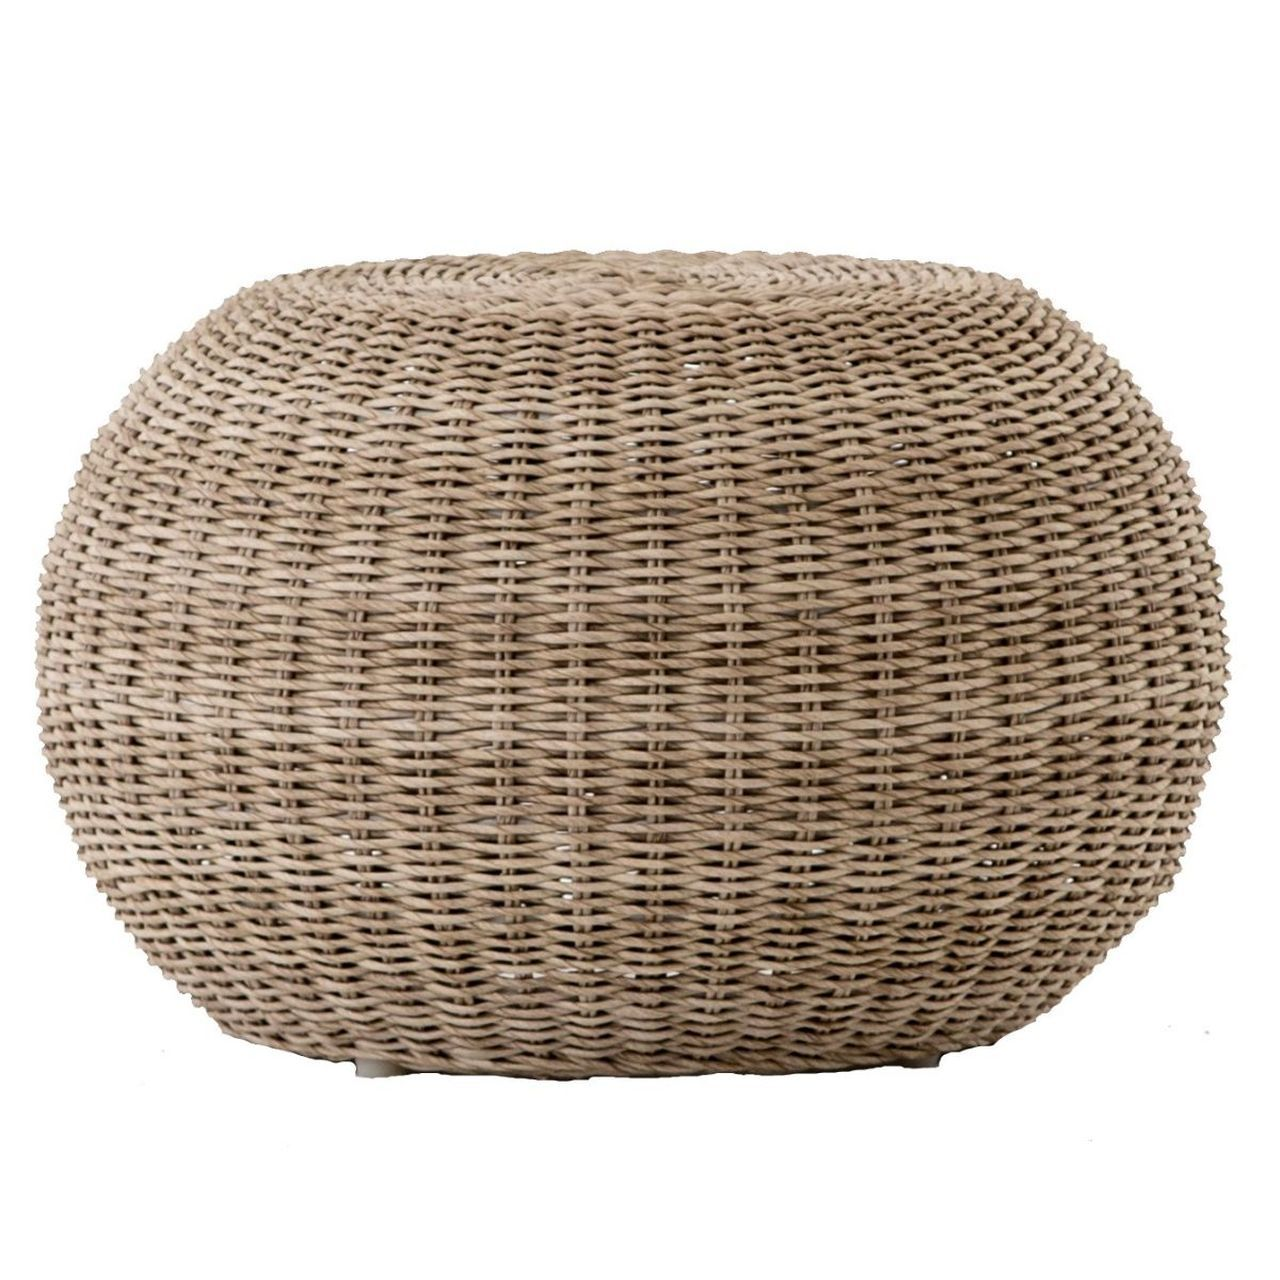 Pascal Vintage White Woven Wicker Round Stool Ottoman Outdoor Coffee Tables Outdoor Stools Outdoor Furniture [ 1280 x 1280 Pixel ]